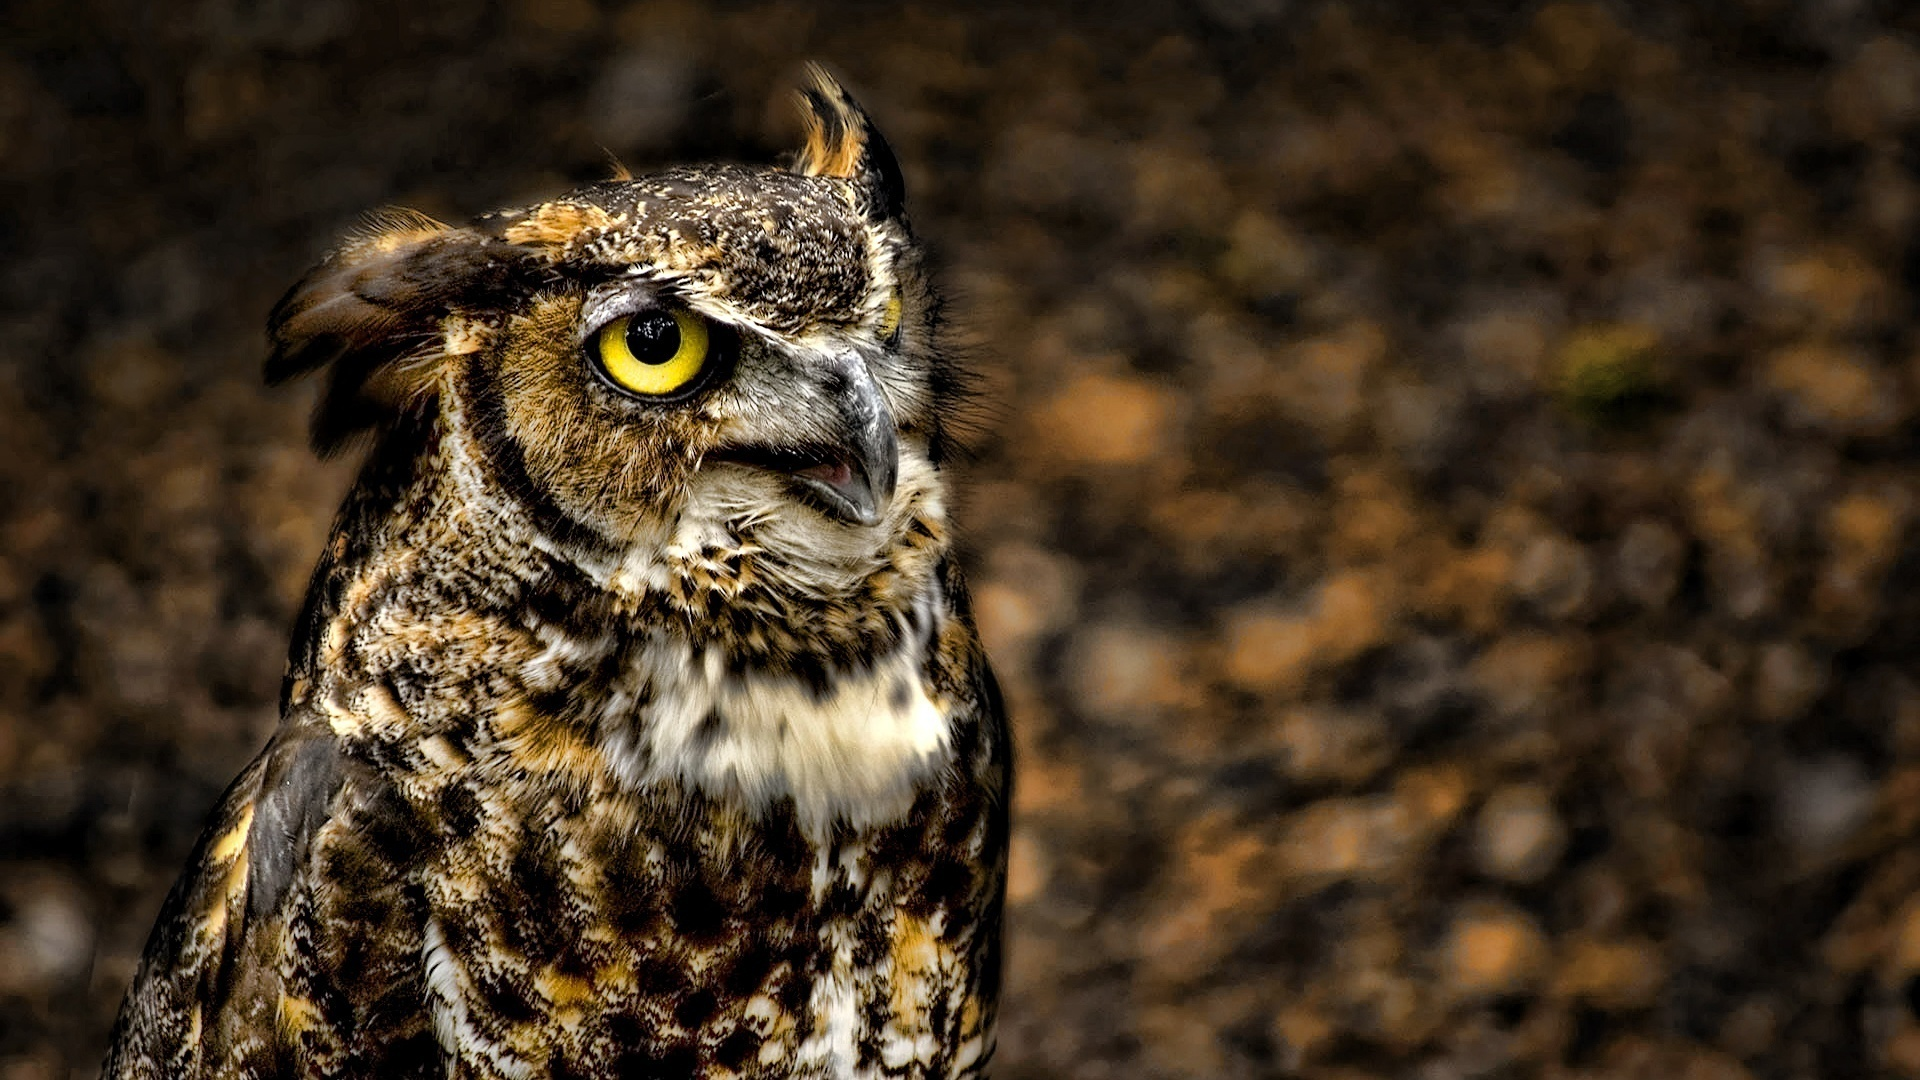 hd great horned owl - photo #5